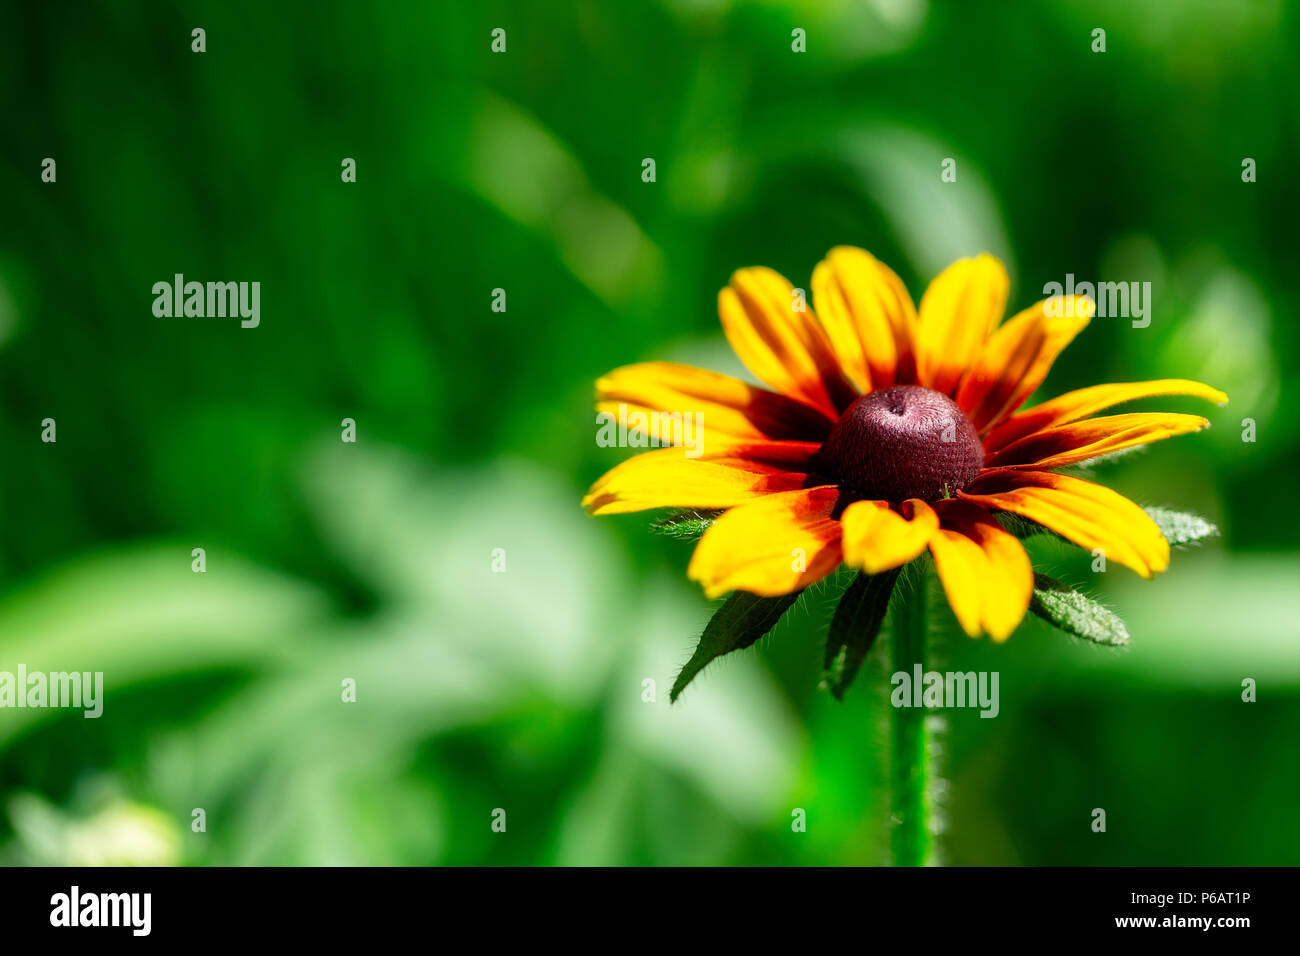 Close Up Of Multicolor Red Yellow Aster Flower On Green Blurred